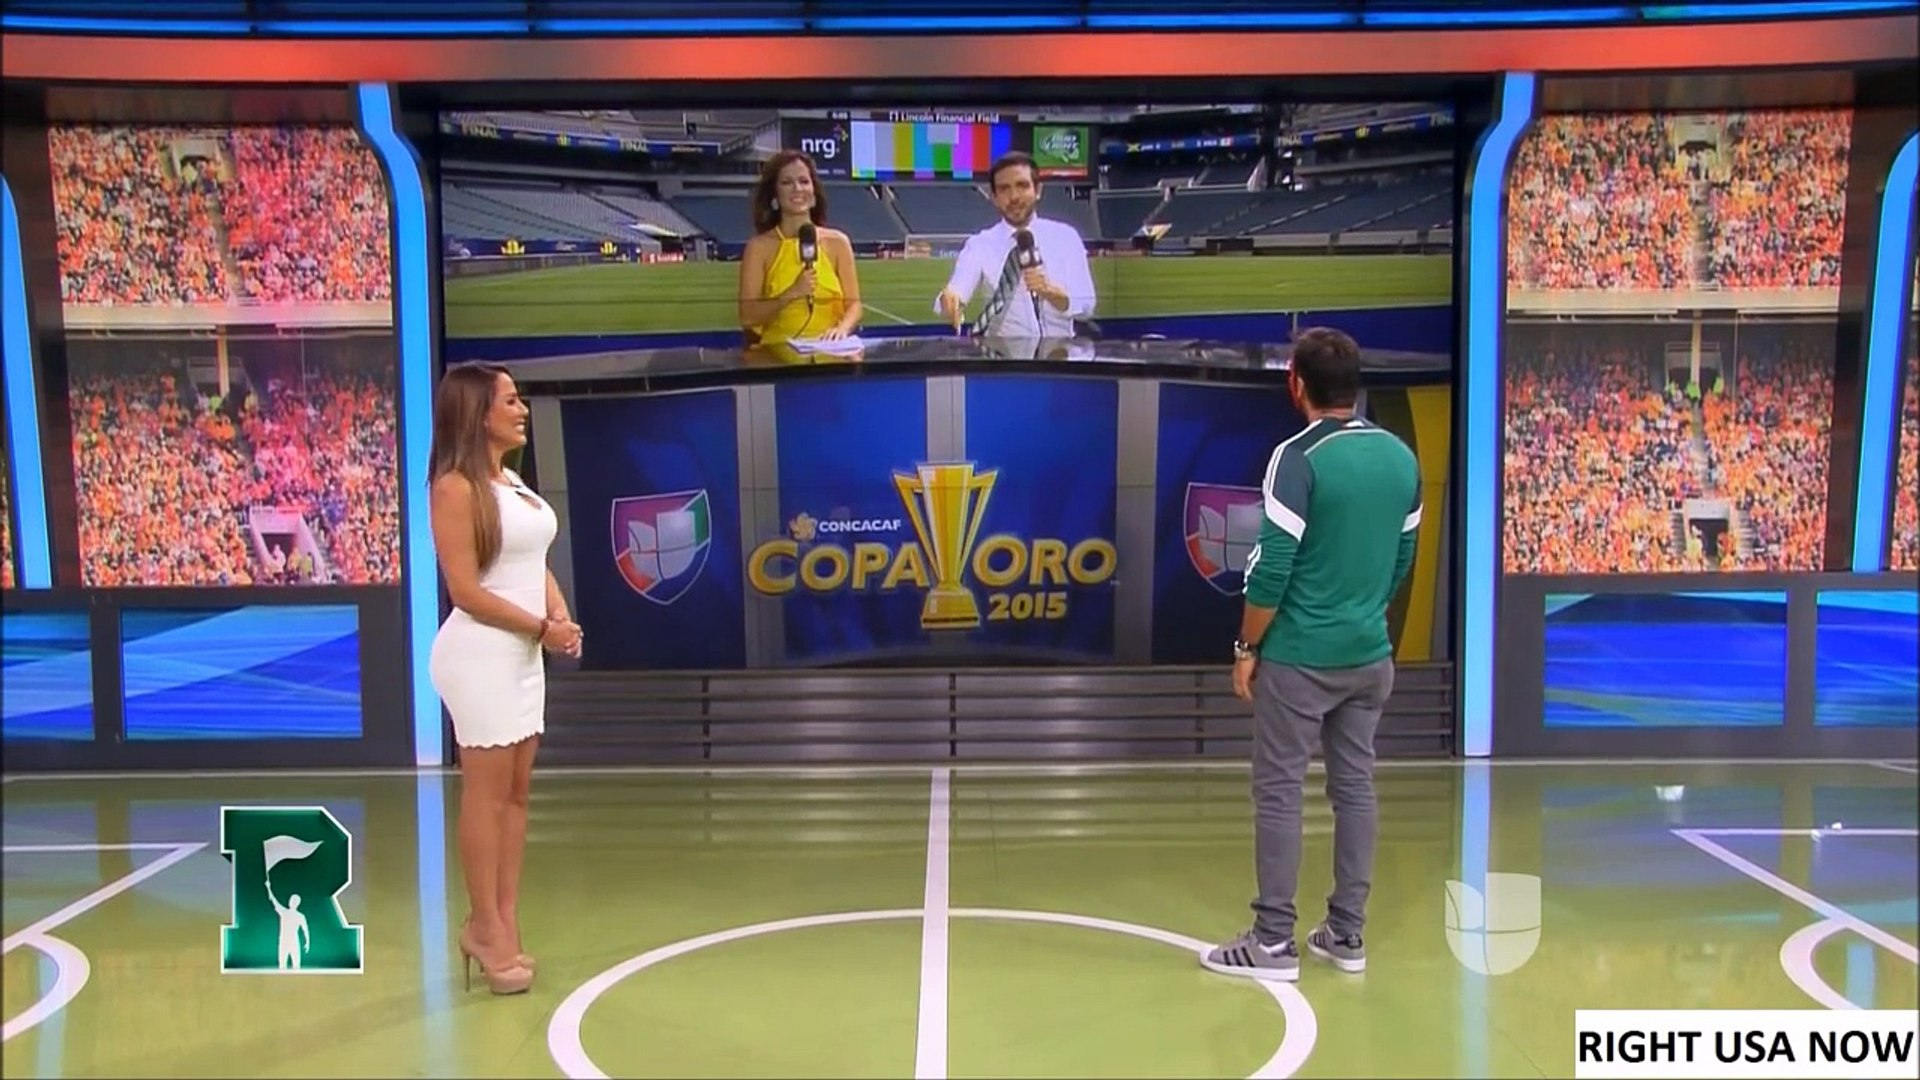 Lindsay Casinelli Big Tits, Nice Ass Republica Deportiva July 26, 2015